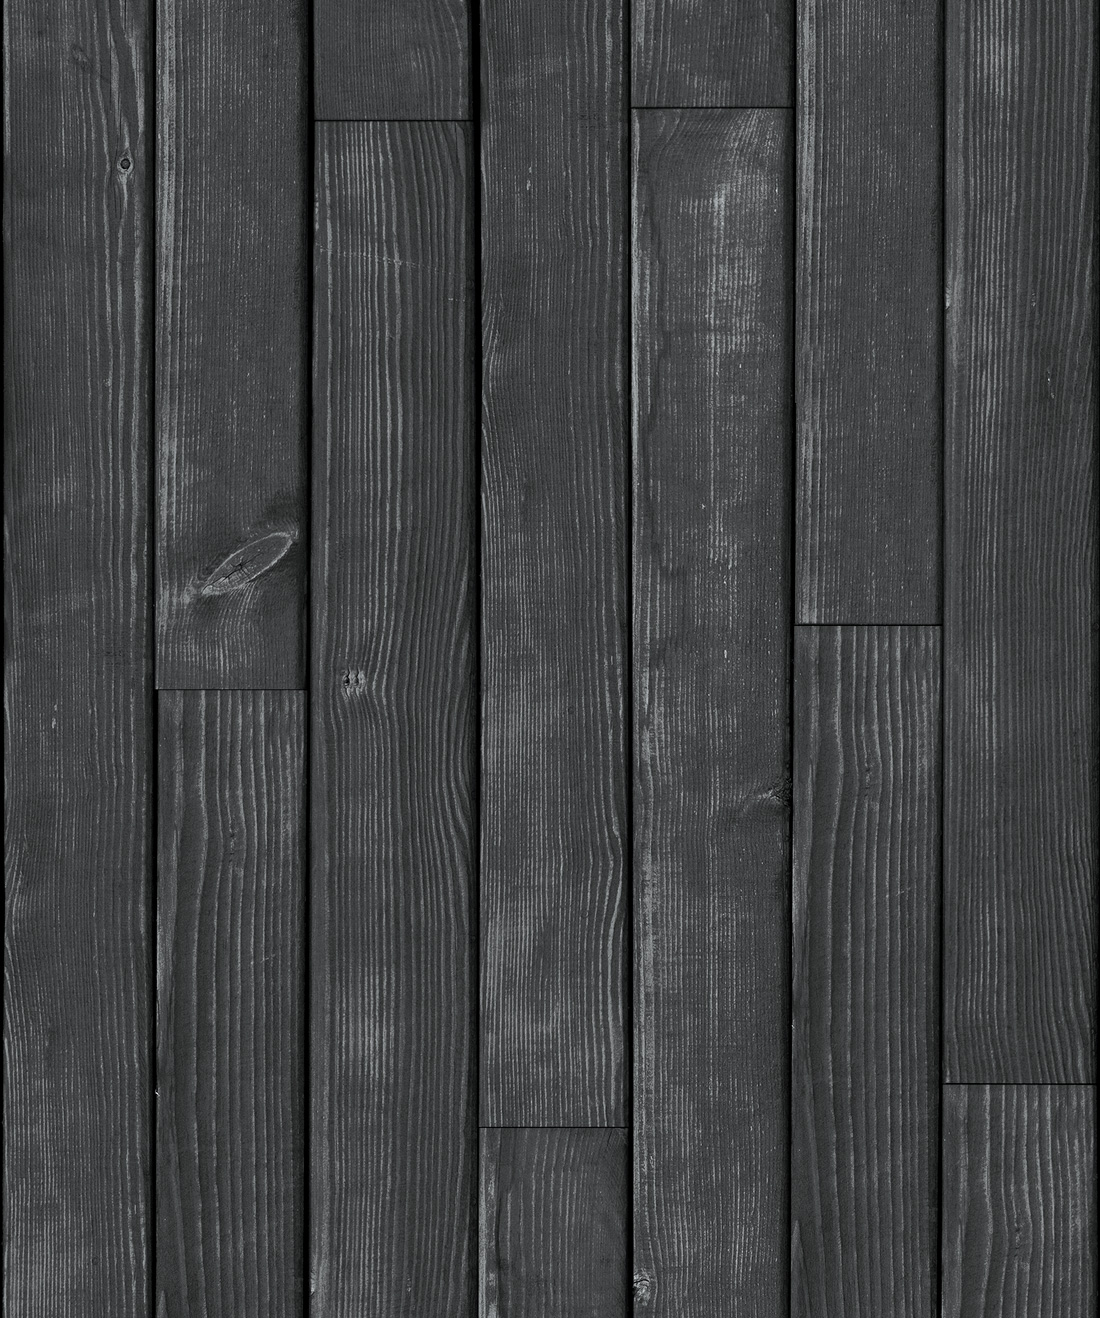 Black Wooden Boards Wallpaper